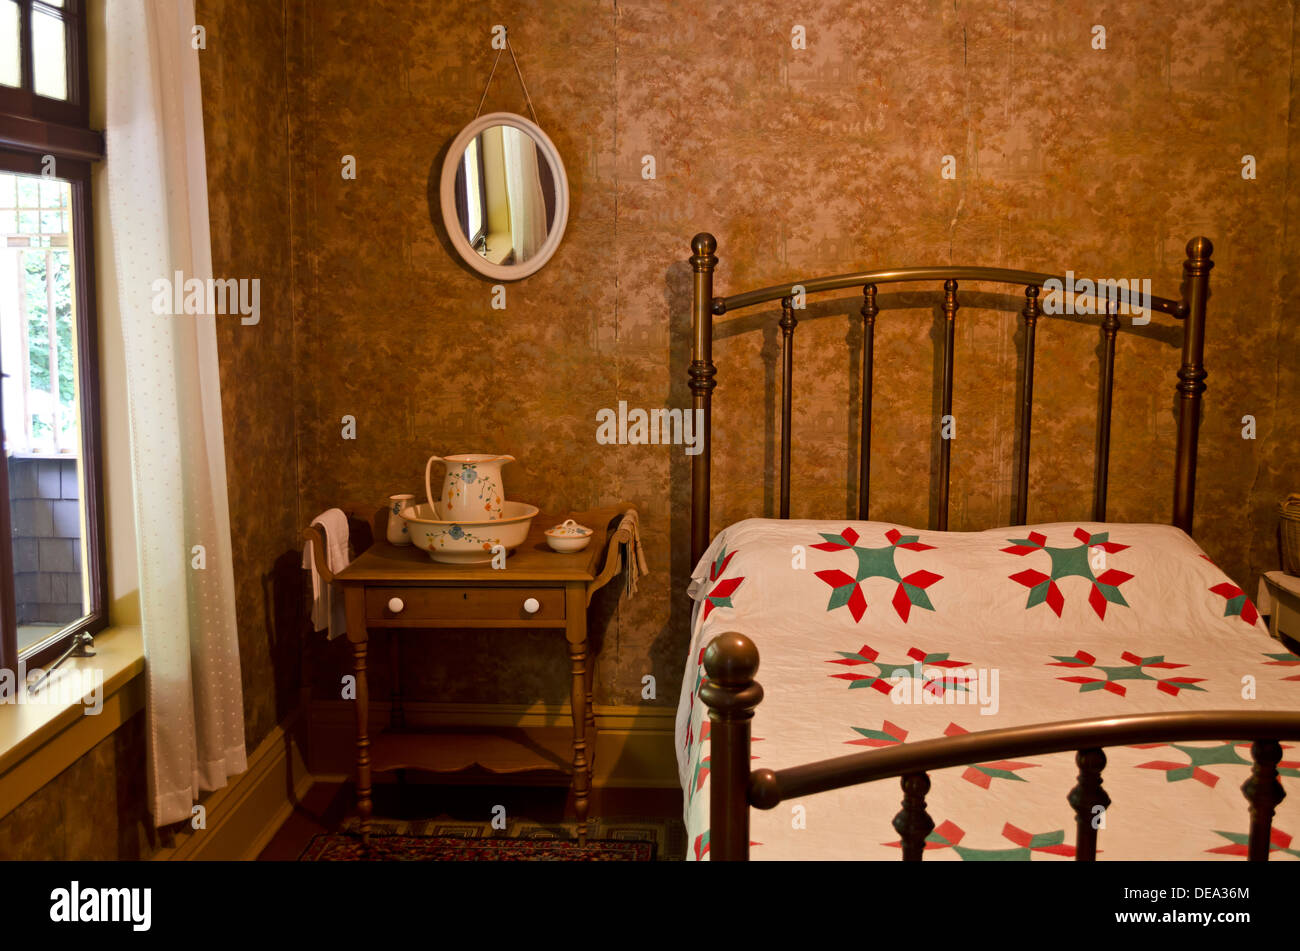 Vintage Old Fashioned Bedroom Setting With Iron Bed Frame And Wash